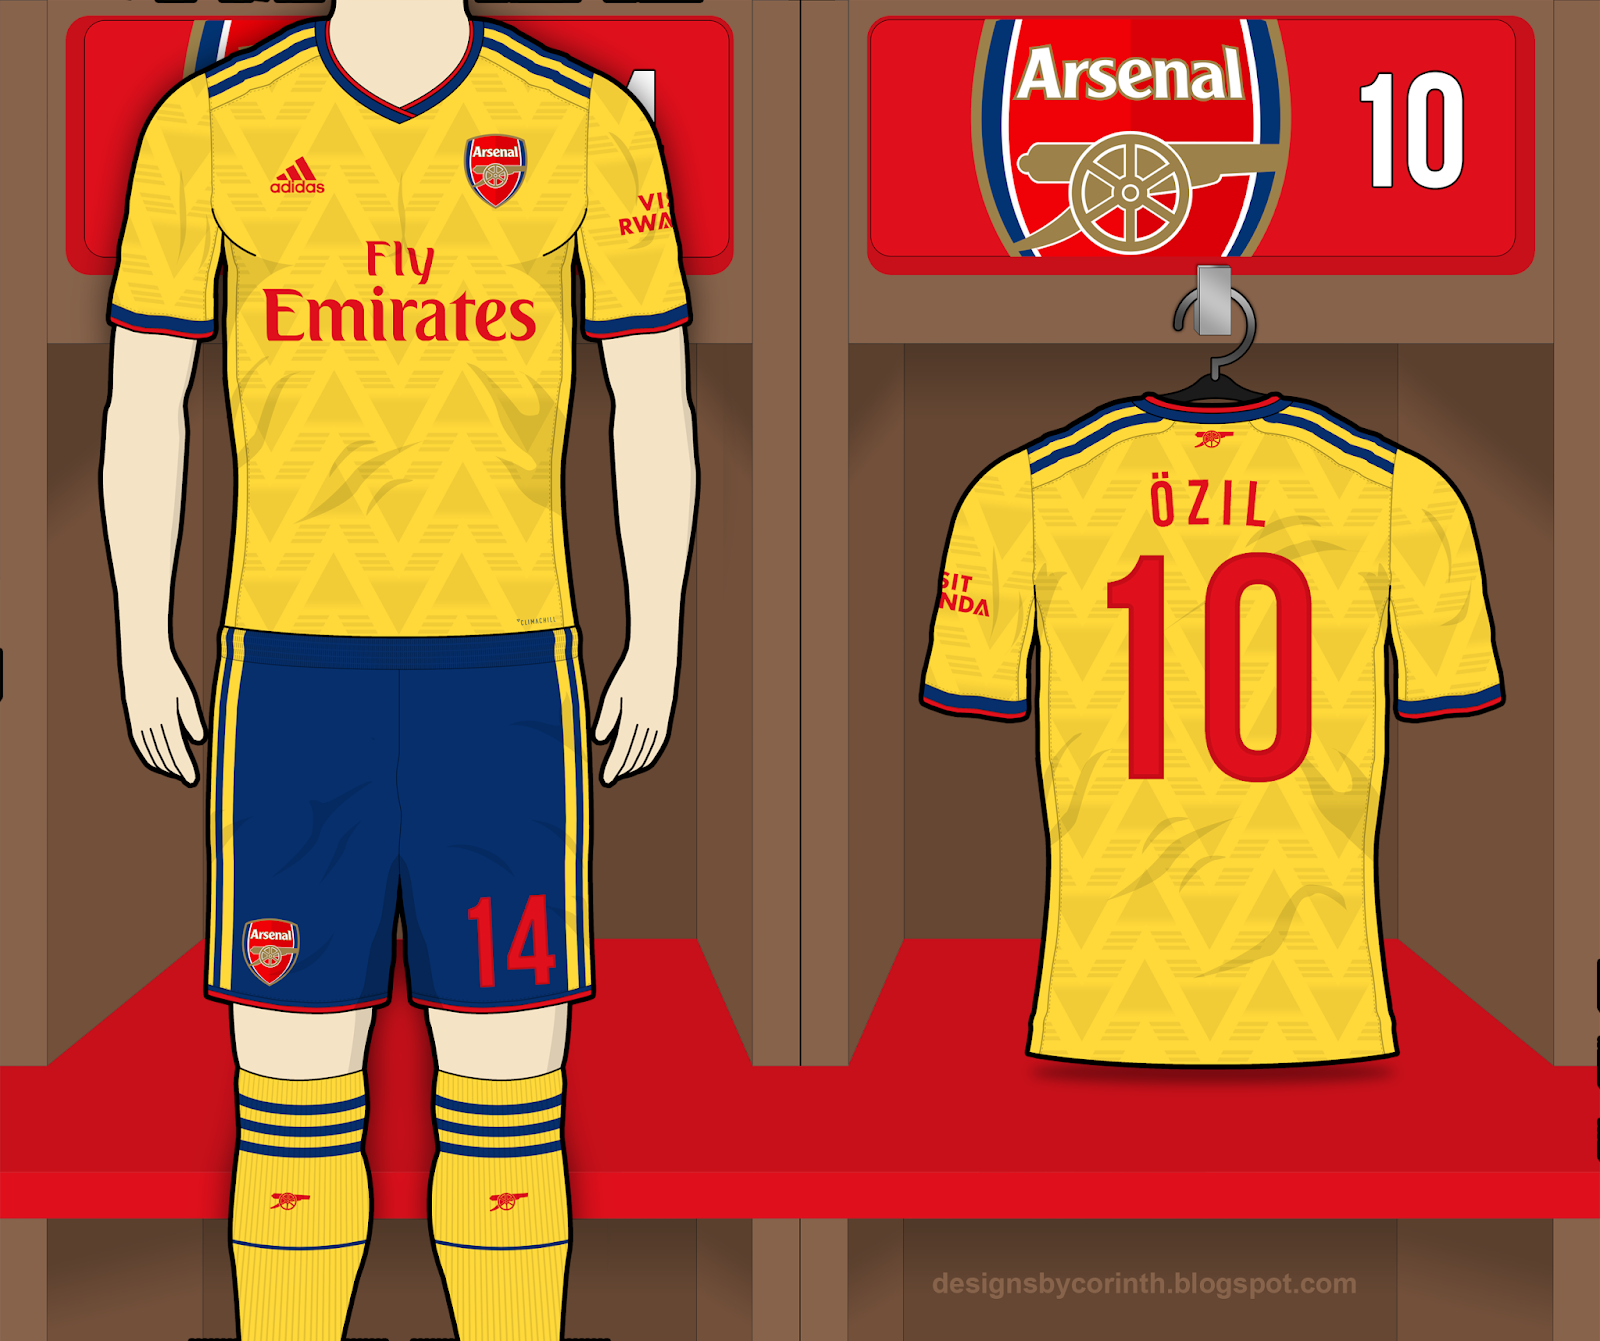 c2411800d Arsenal 2019 20 Home and Away Kit Predictions (according to leaks)